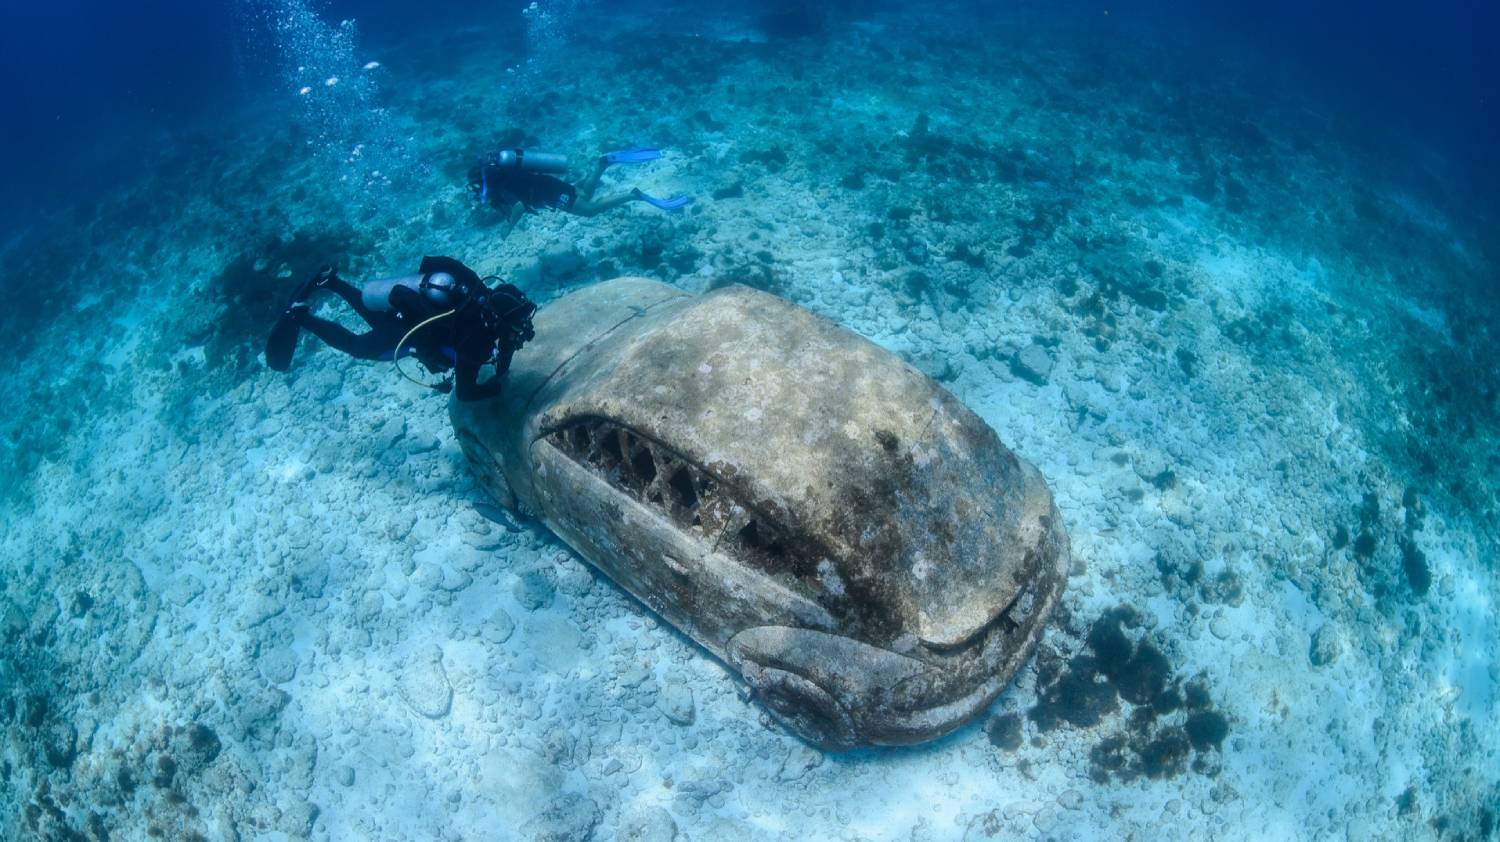 Cancun Underwater Museum - Things To Do In Cancun